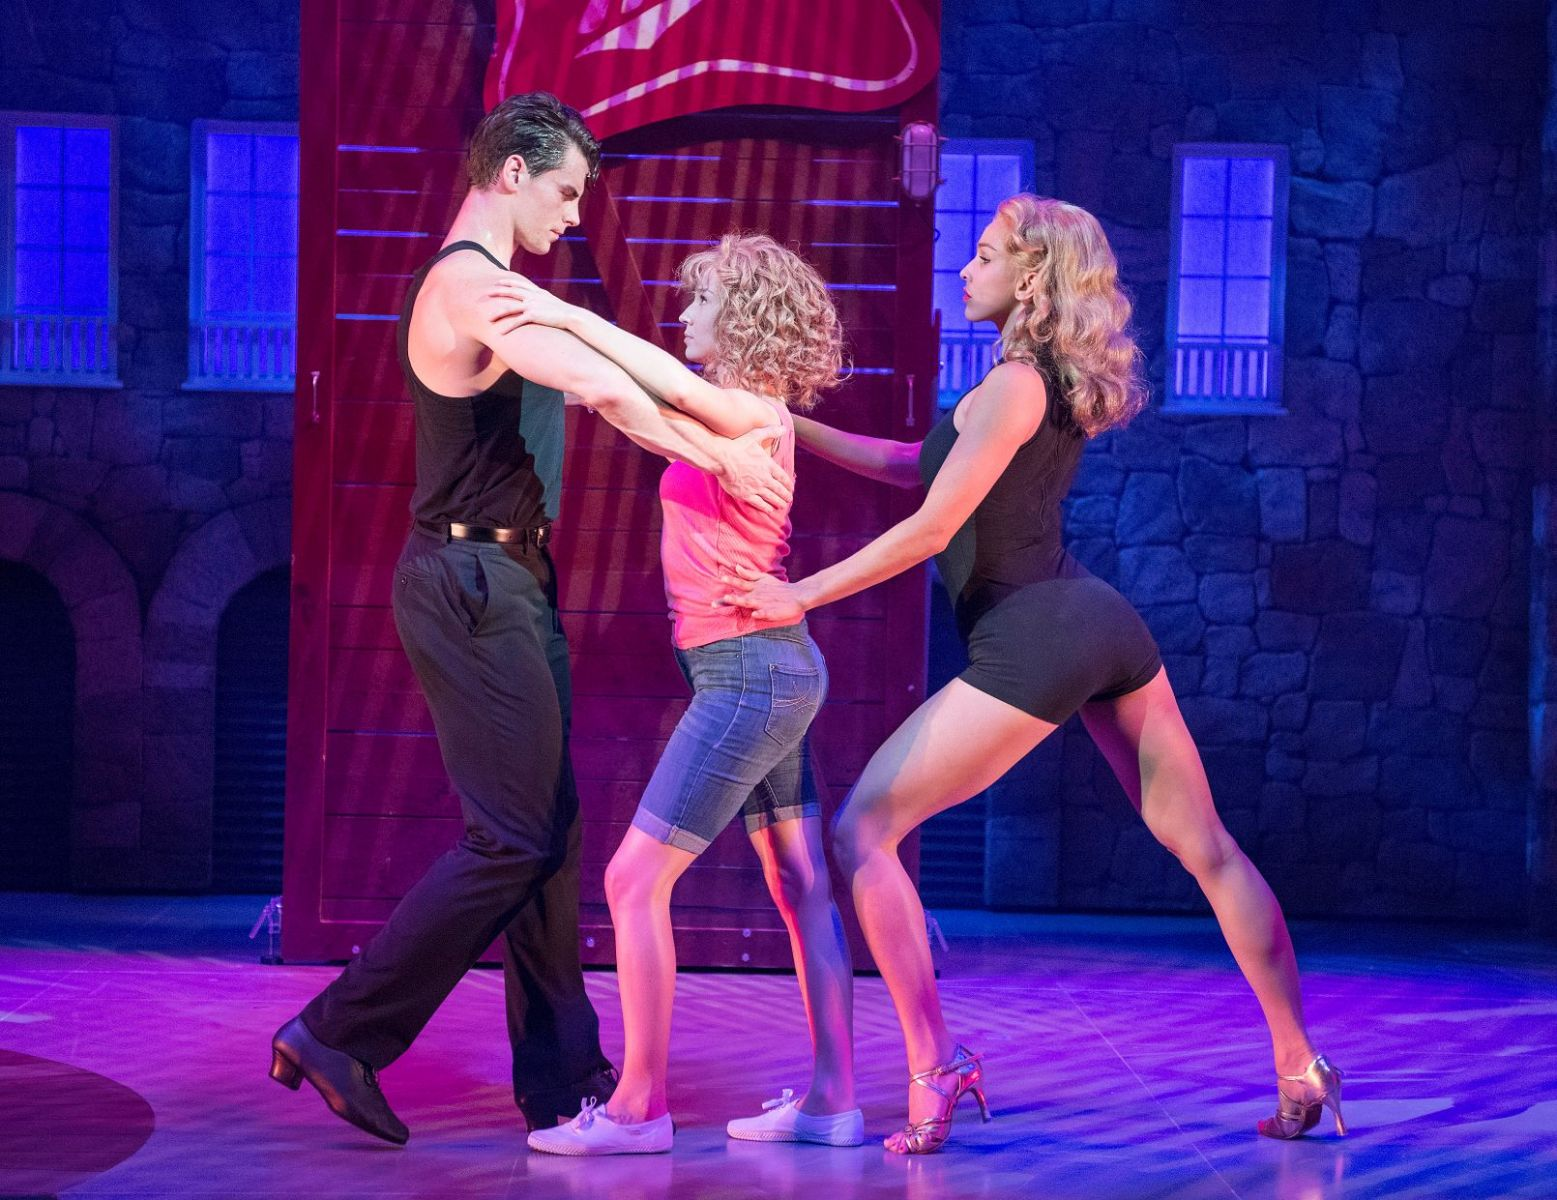 Theatre Review: In the most obvious cliche ever Ma Lee and I had the time of our lives watching Dirty Dancing at the Alexandra Theatre...